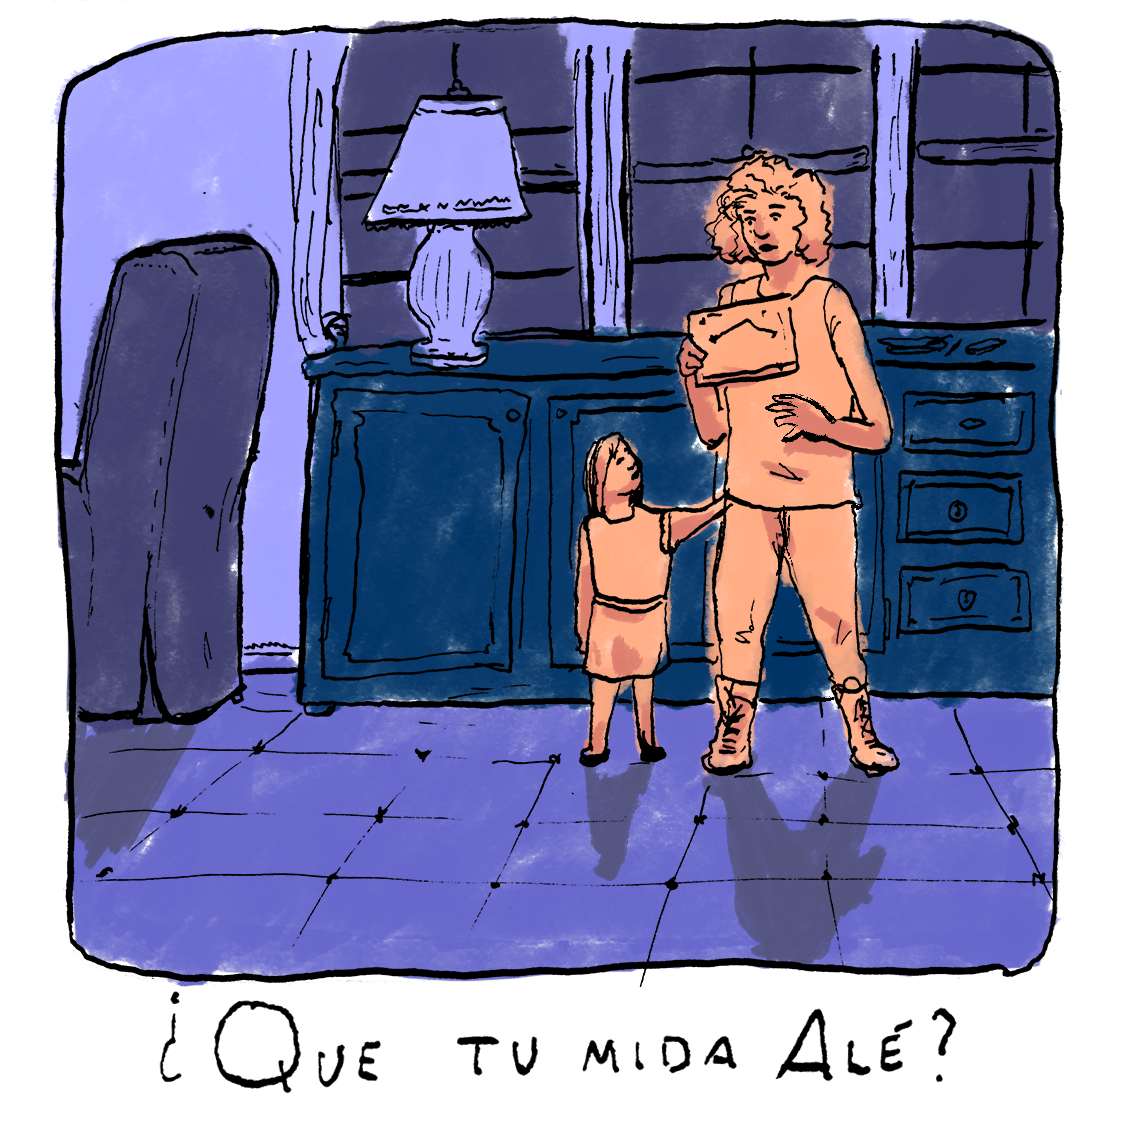 Description: Illustration of young girl looking up at a middle-aged woman, who is holding a framed photo. The caption reads ¿Que tu mida alé?